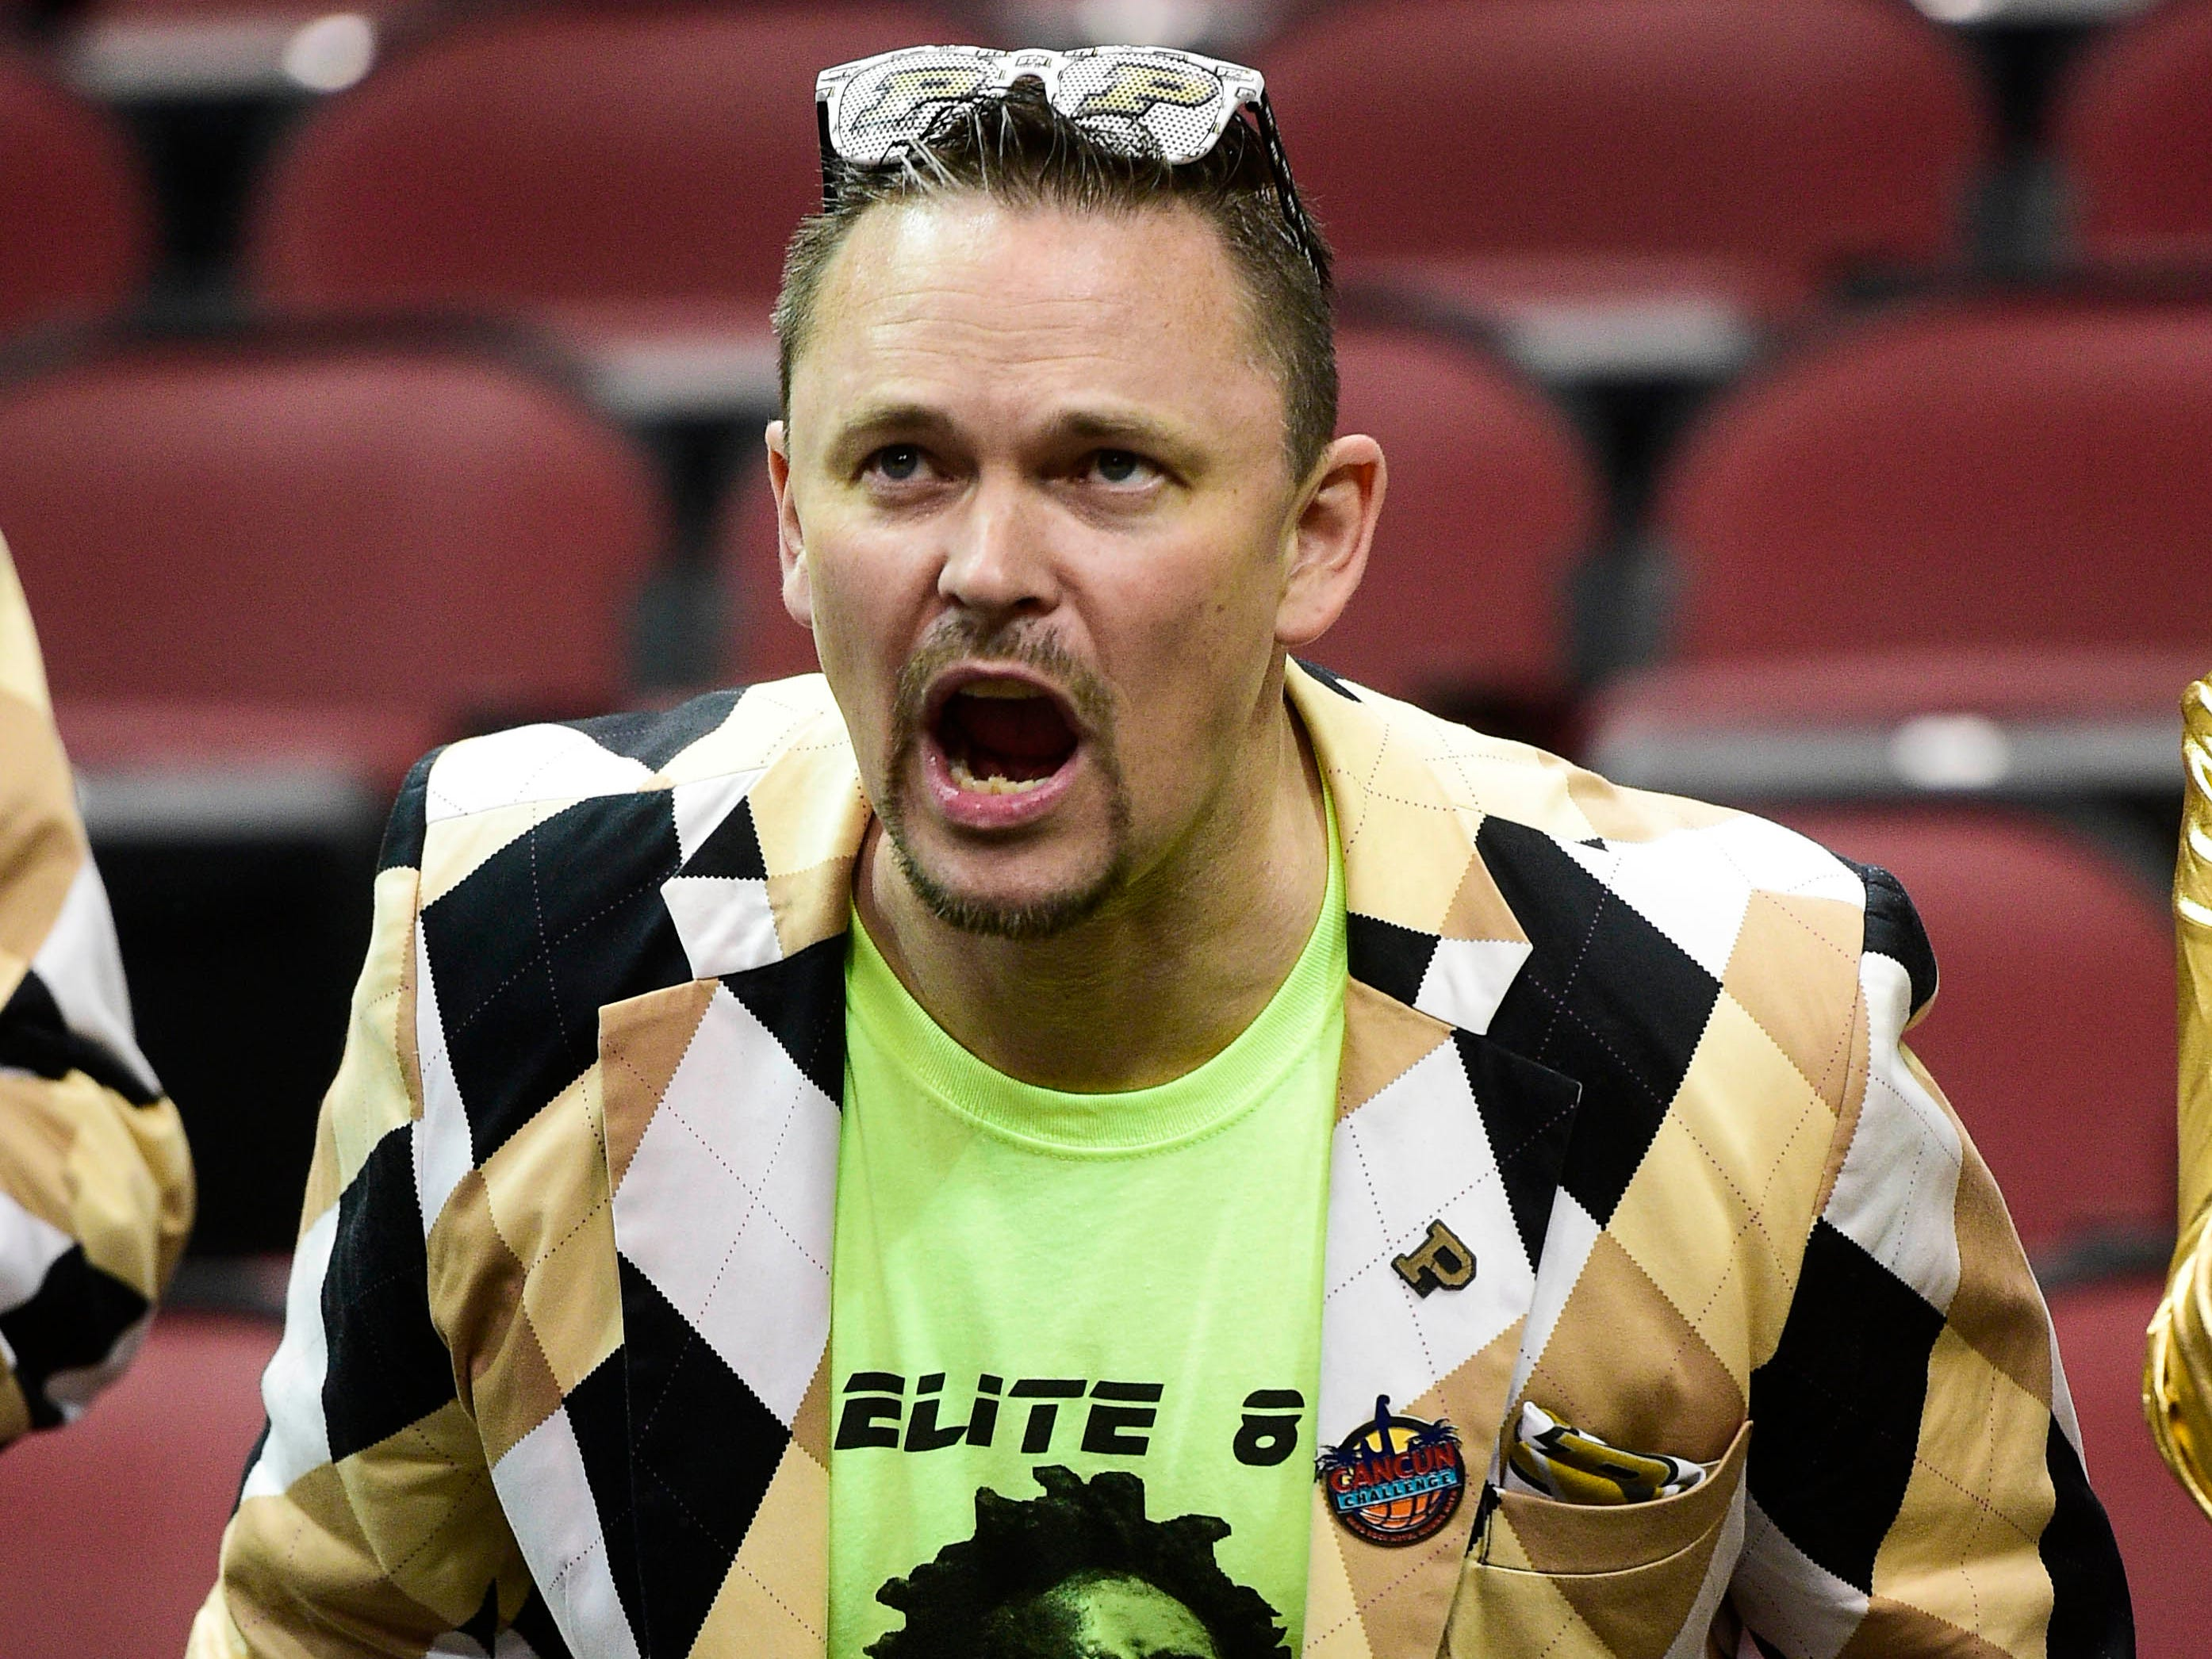 Mar 30, 2019; Louisville, KY, United States; A Purdue Boilermakers fan cheers before the championship game against the Virginia Cavaliers of the south regional of the 2019 NCAA Tournament at KFC Yum Center. Mandatory Credit: Thomas J. Russo-USA TODAY Sports